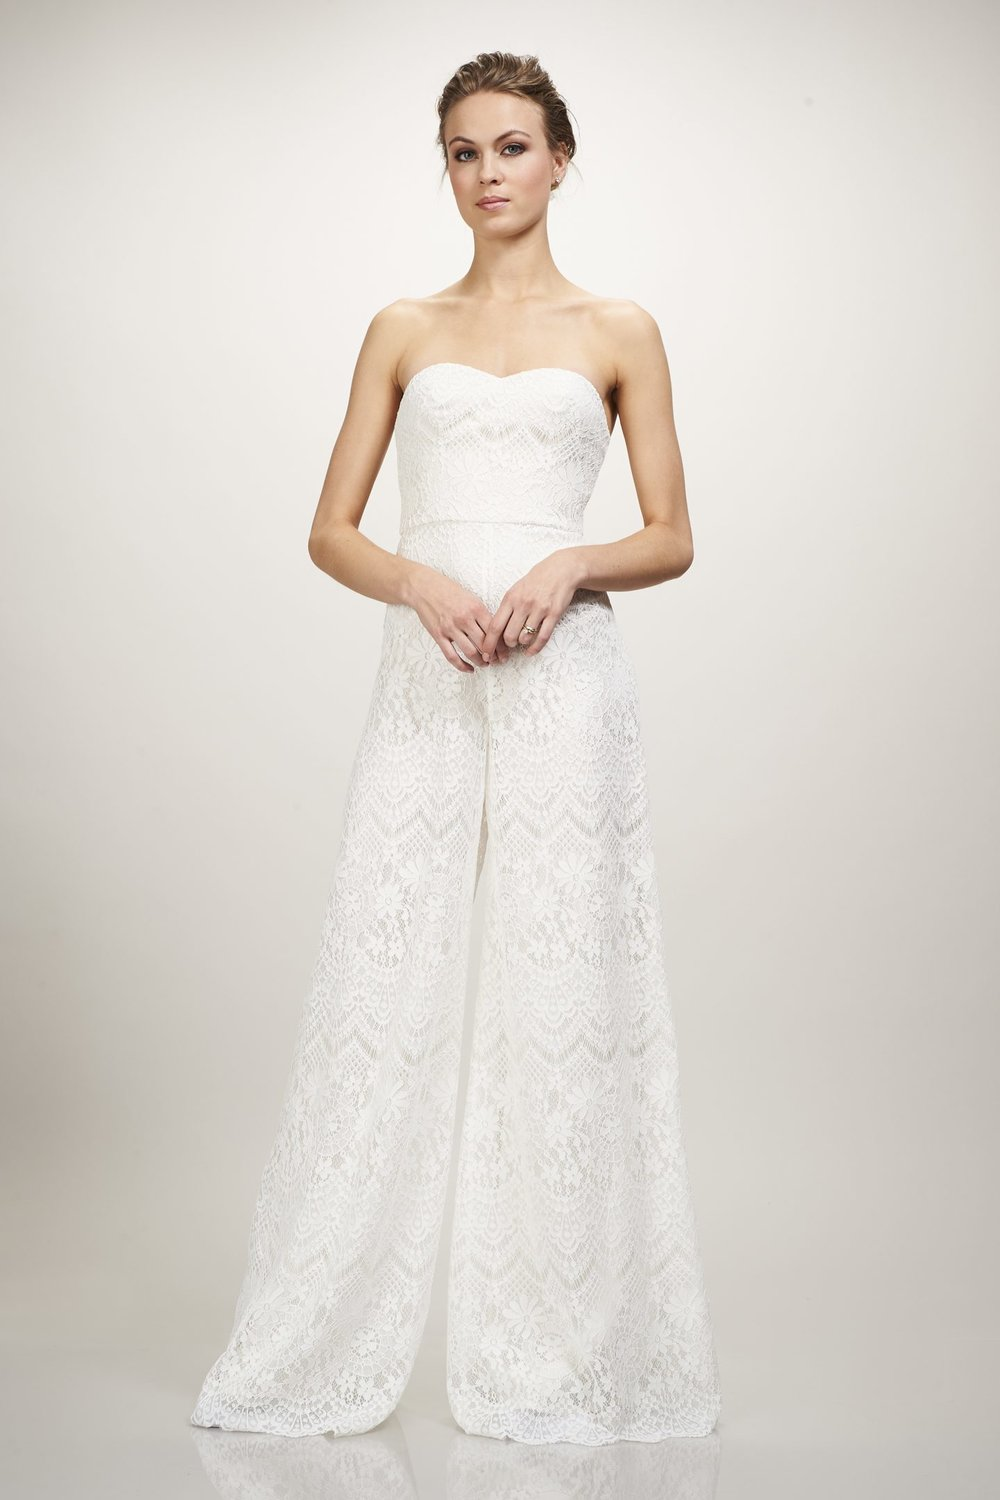 Theia 890410 Ivory  Retail Price $1200 | Our Price $840